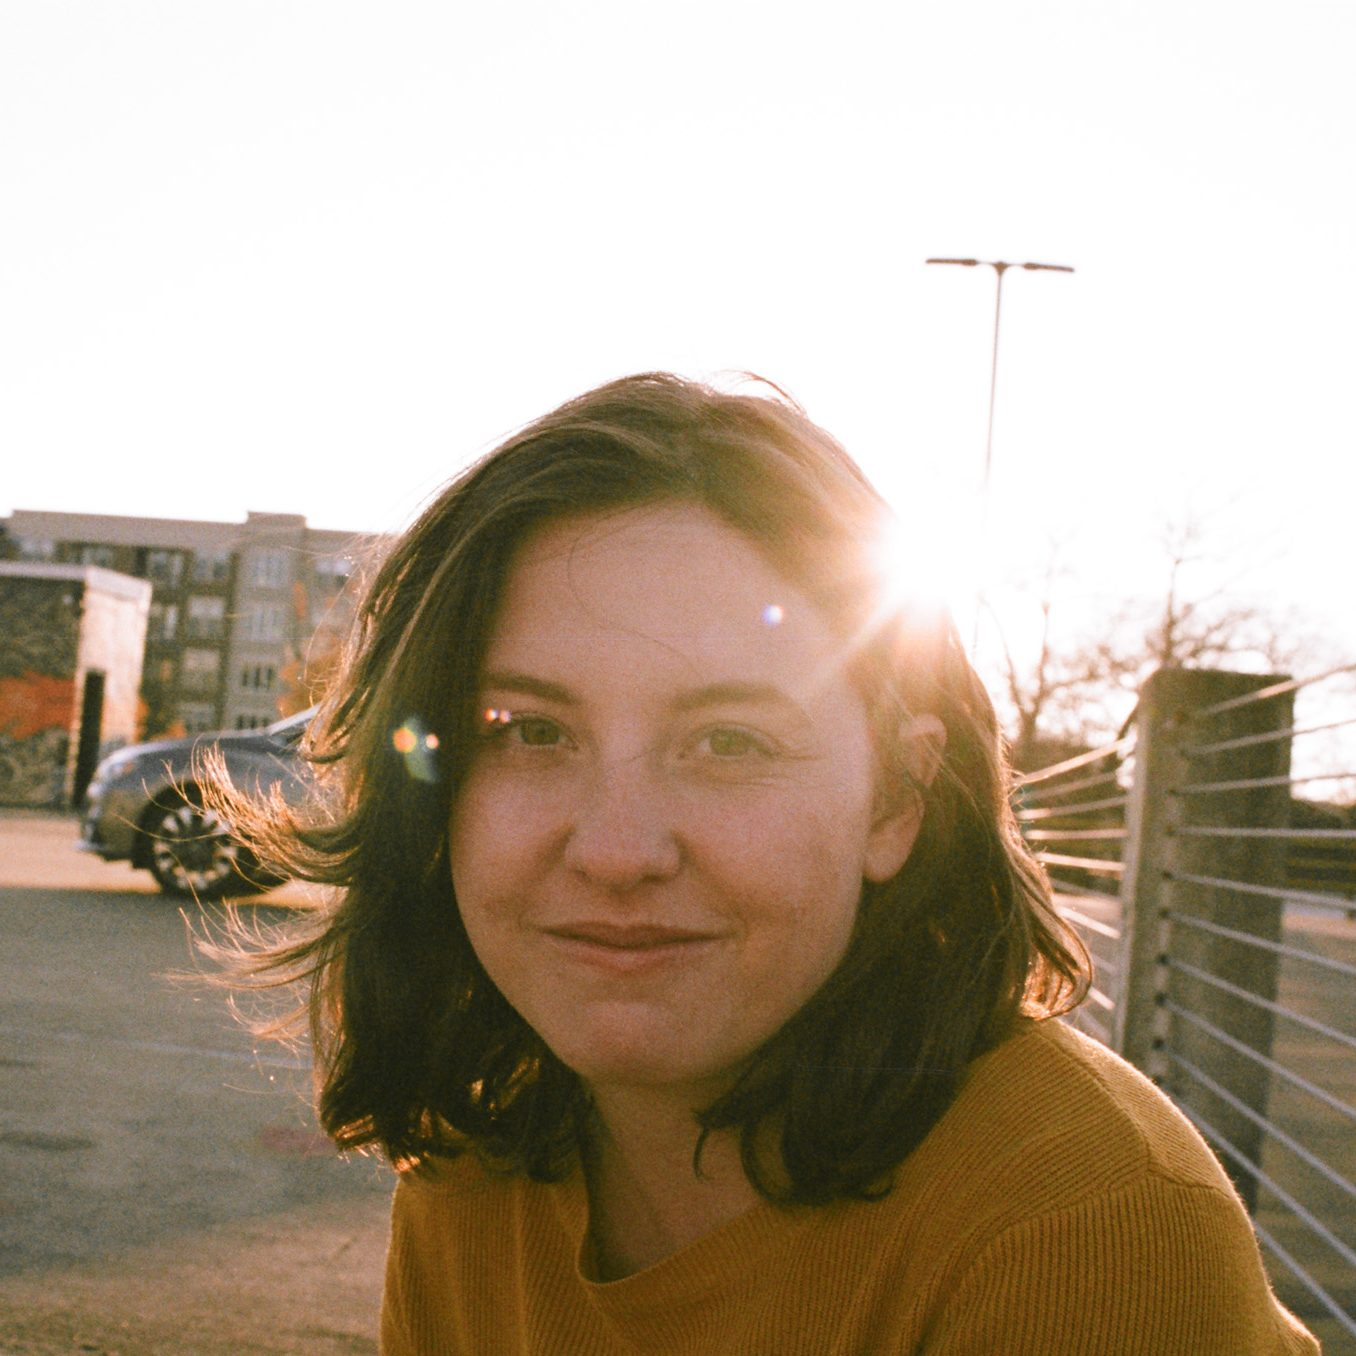 Cheyenne Bilderback is sitting on the top floor of a parking garage, with a mural and sunset in the background. She is in her early 20s with wavy brown hair above her shoulders. She is smiling at the camera.